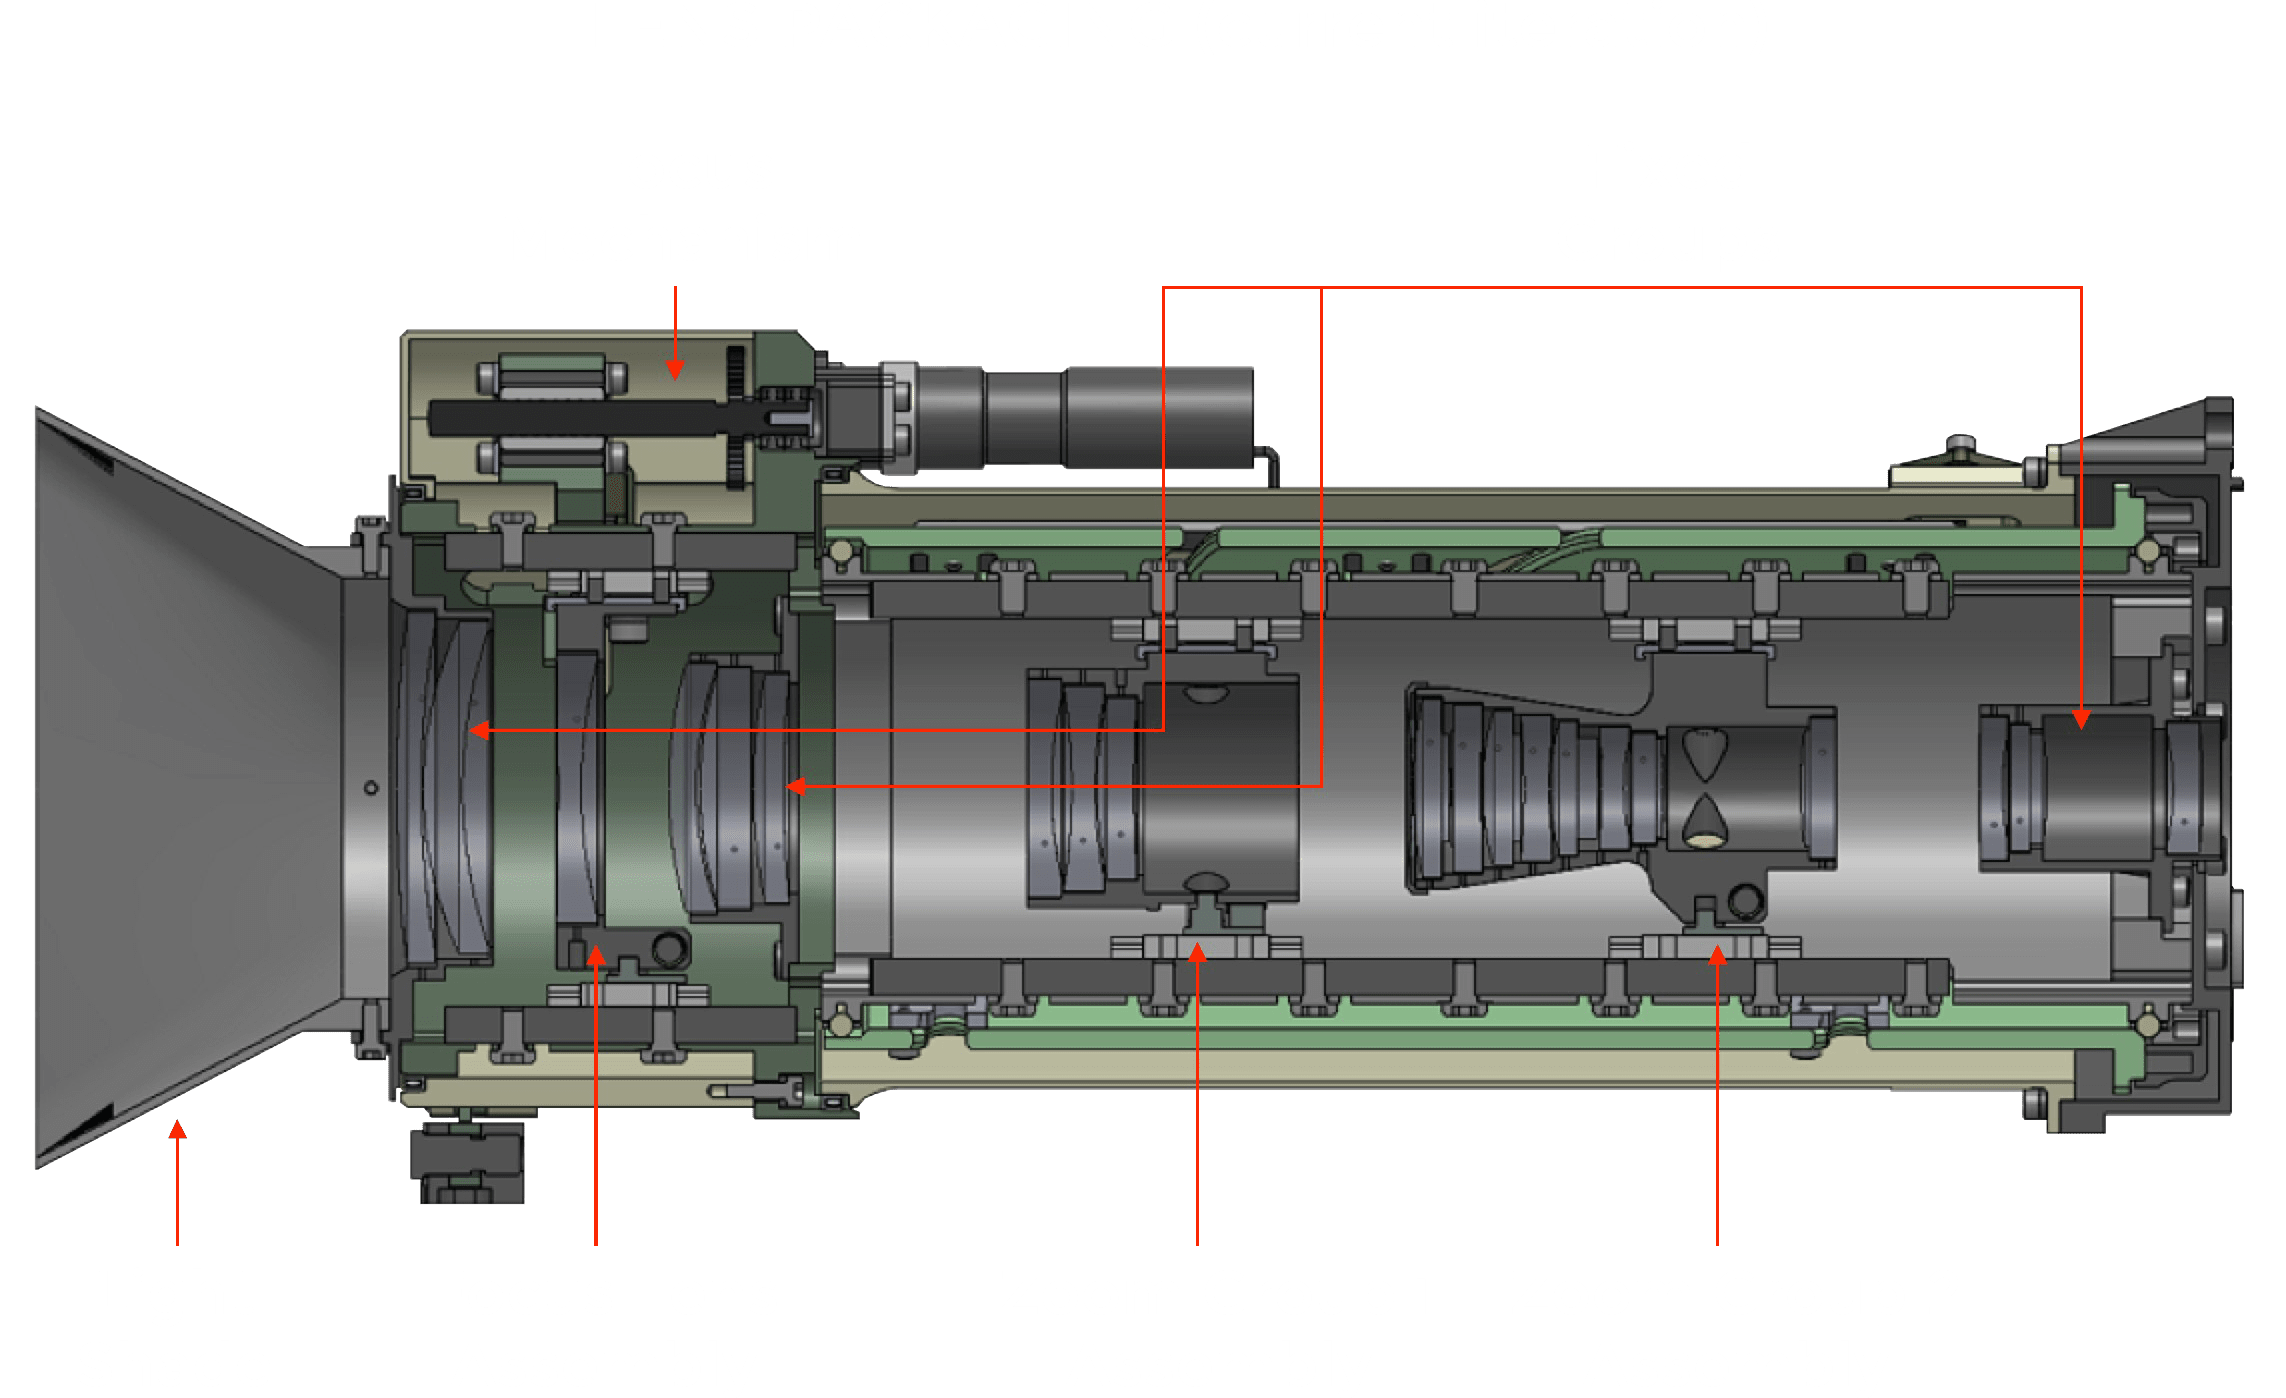 mastcam z lens packaging diagram labeled full min image